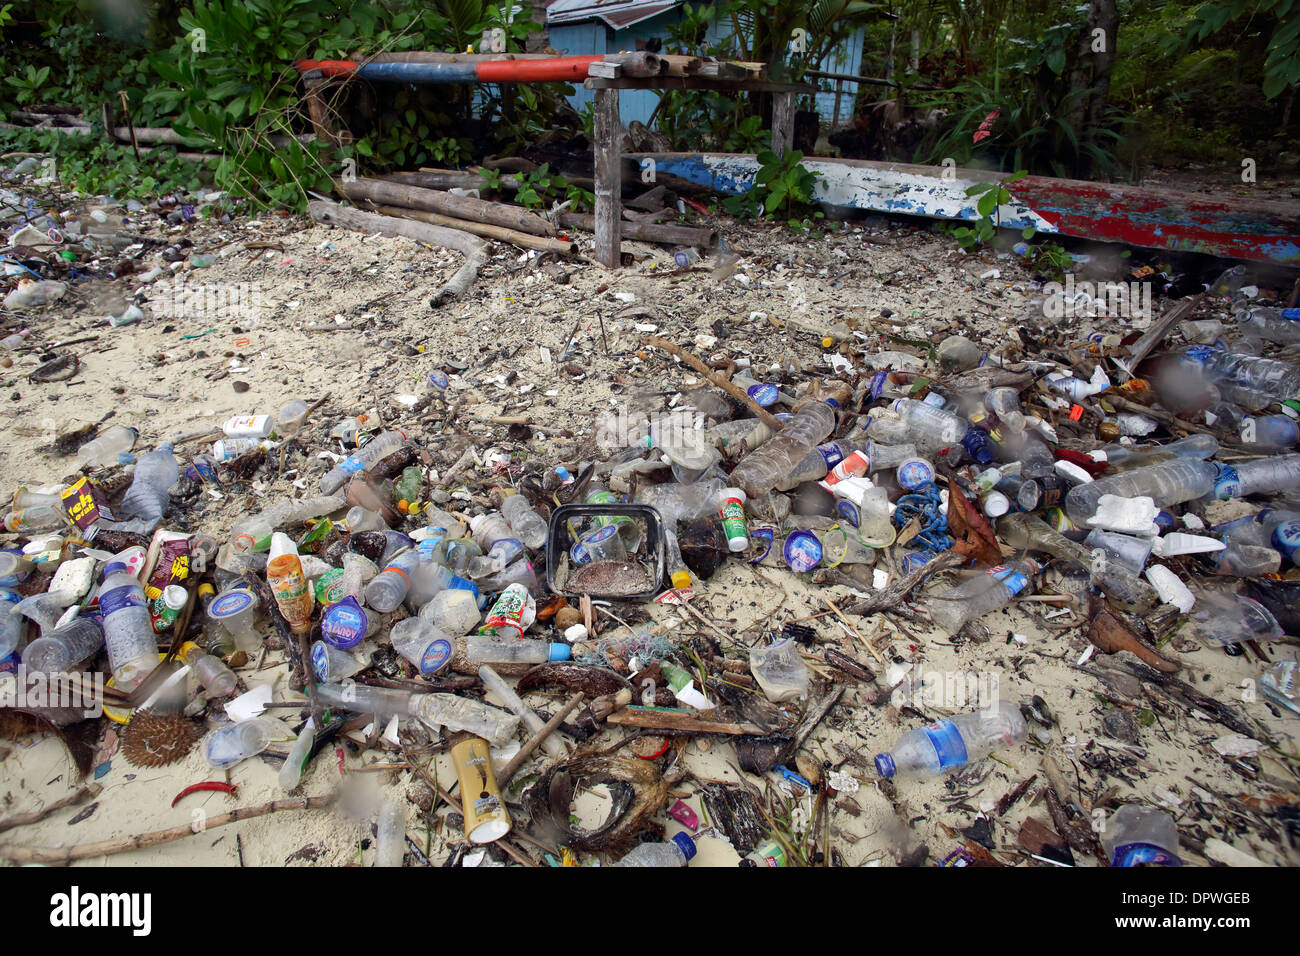 Plastic bottles, bags and other garbage pollute a south coast beach on Bunaken Island, a marine national park of Indonesia - Stock Image